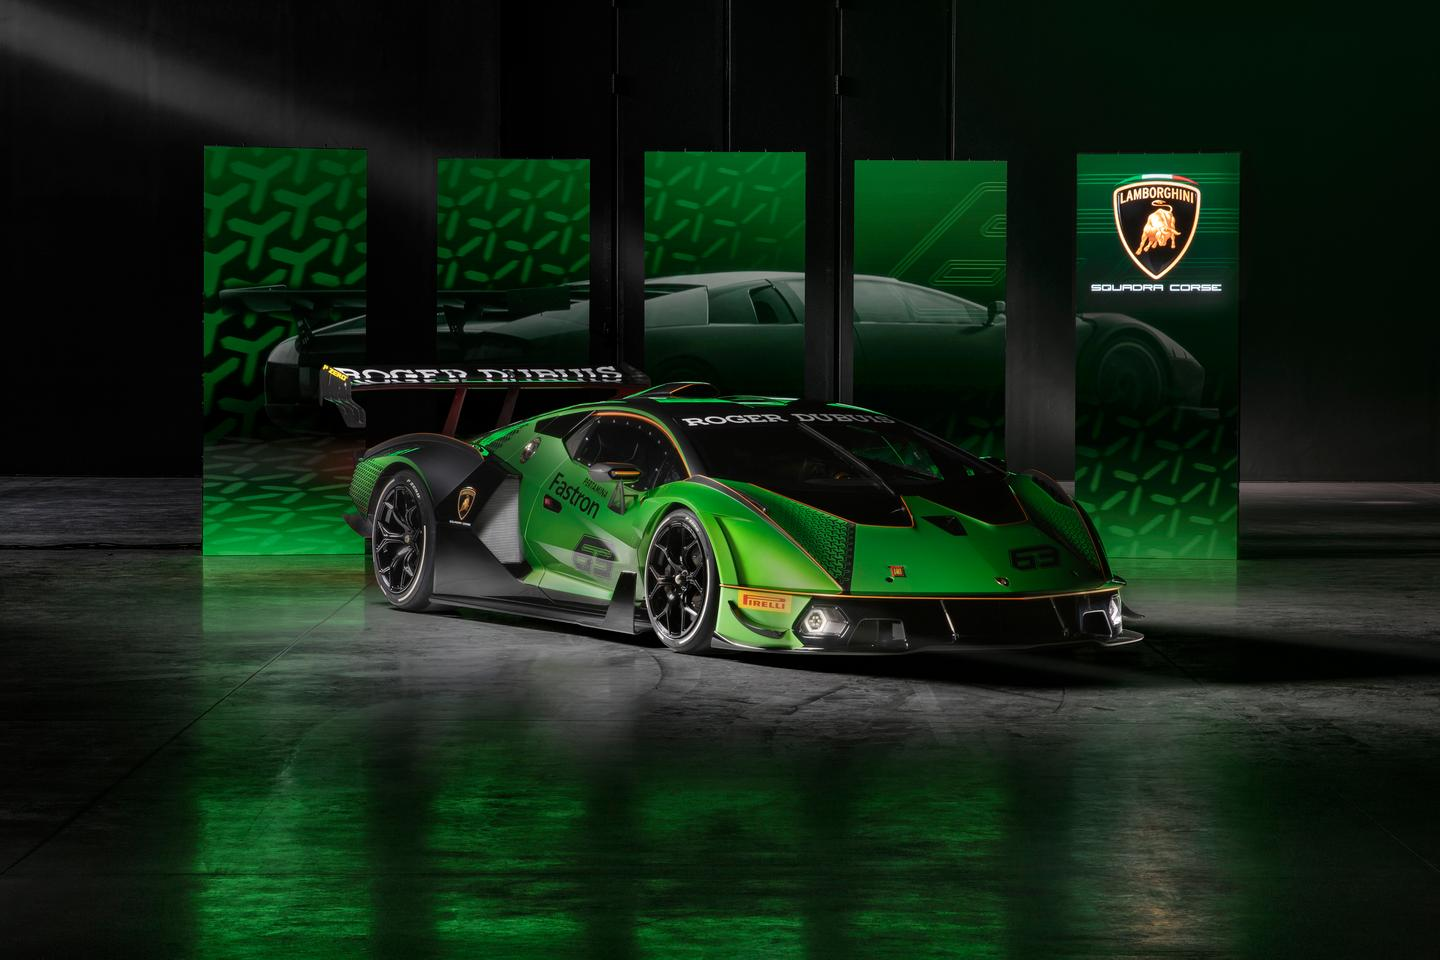 Made for the track only, the Essenza SCV12 features 1,200 kg of downforce and a 1.66 hp/kg ratio